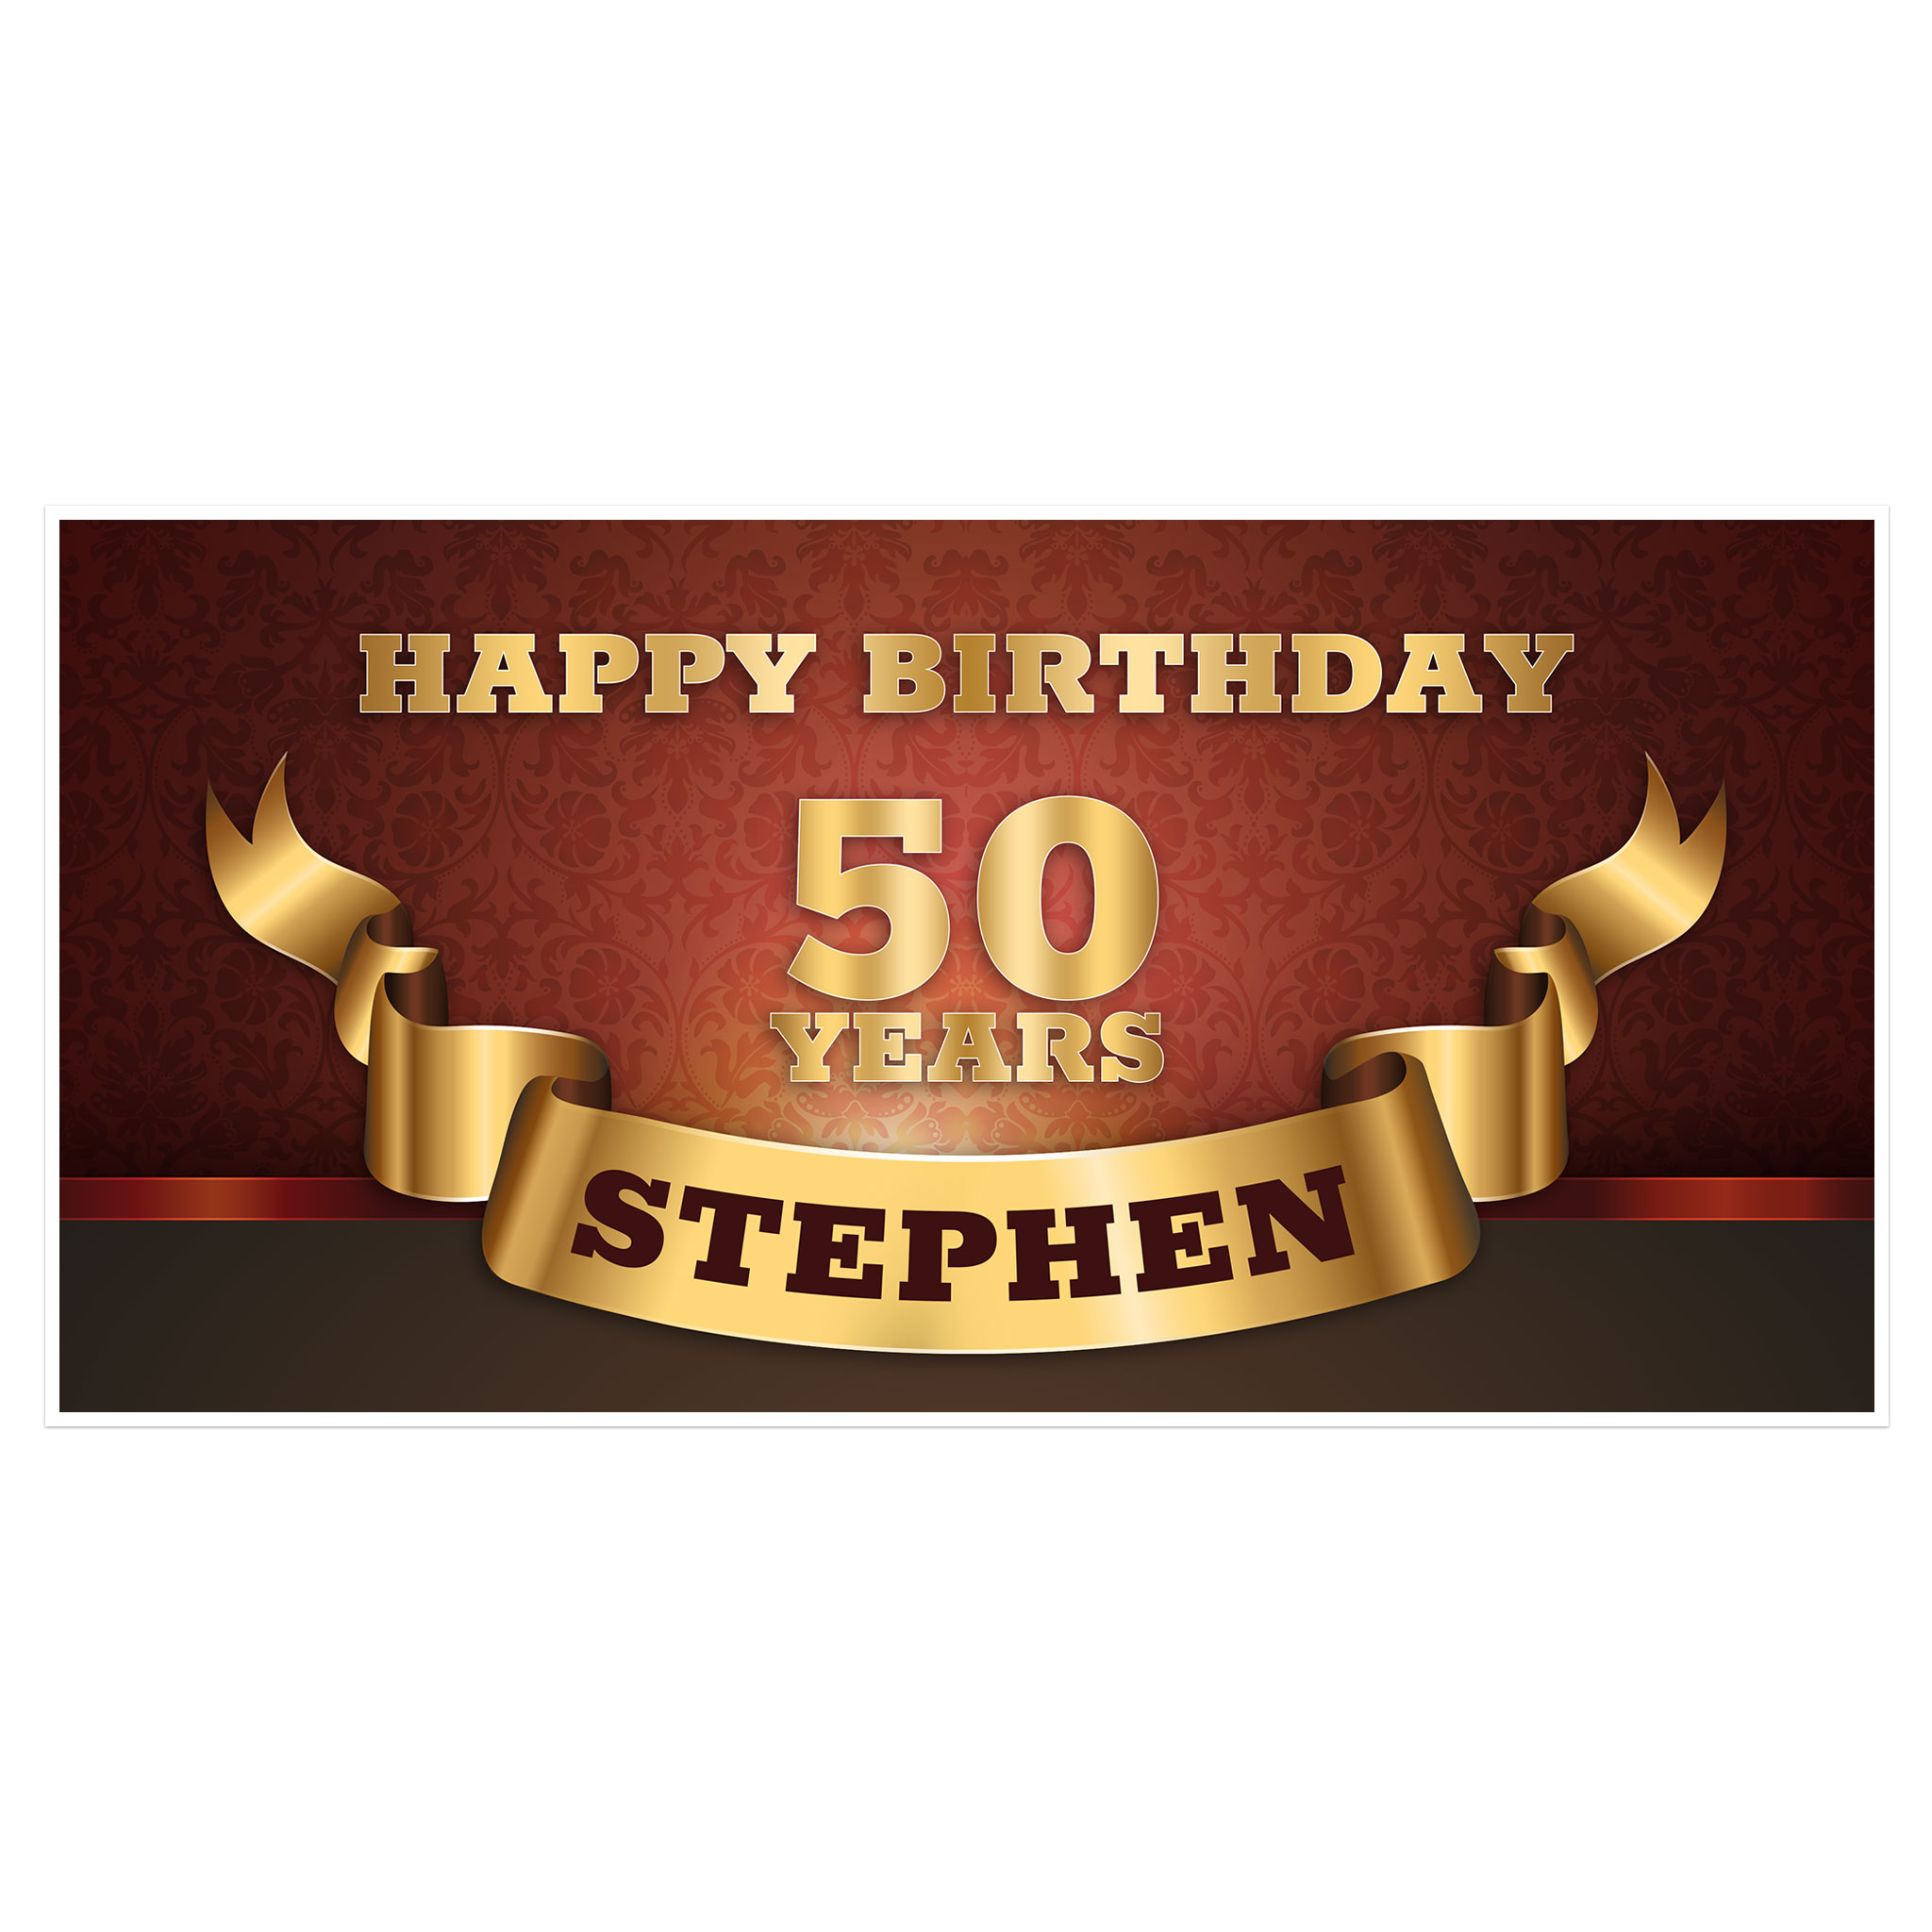 50th birthday banners with photo ; 50th-birthday-banner-05